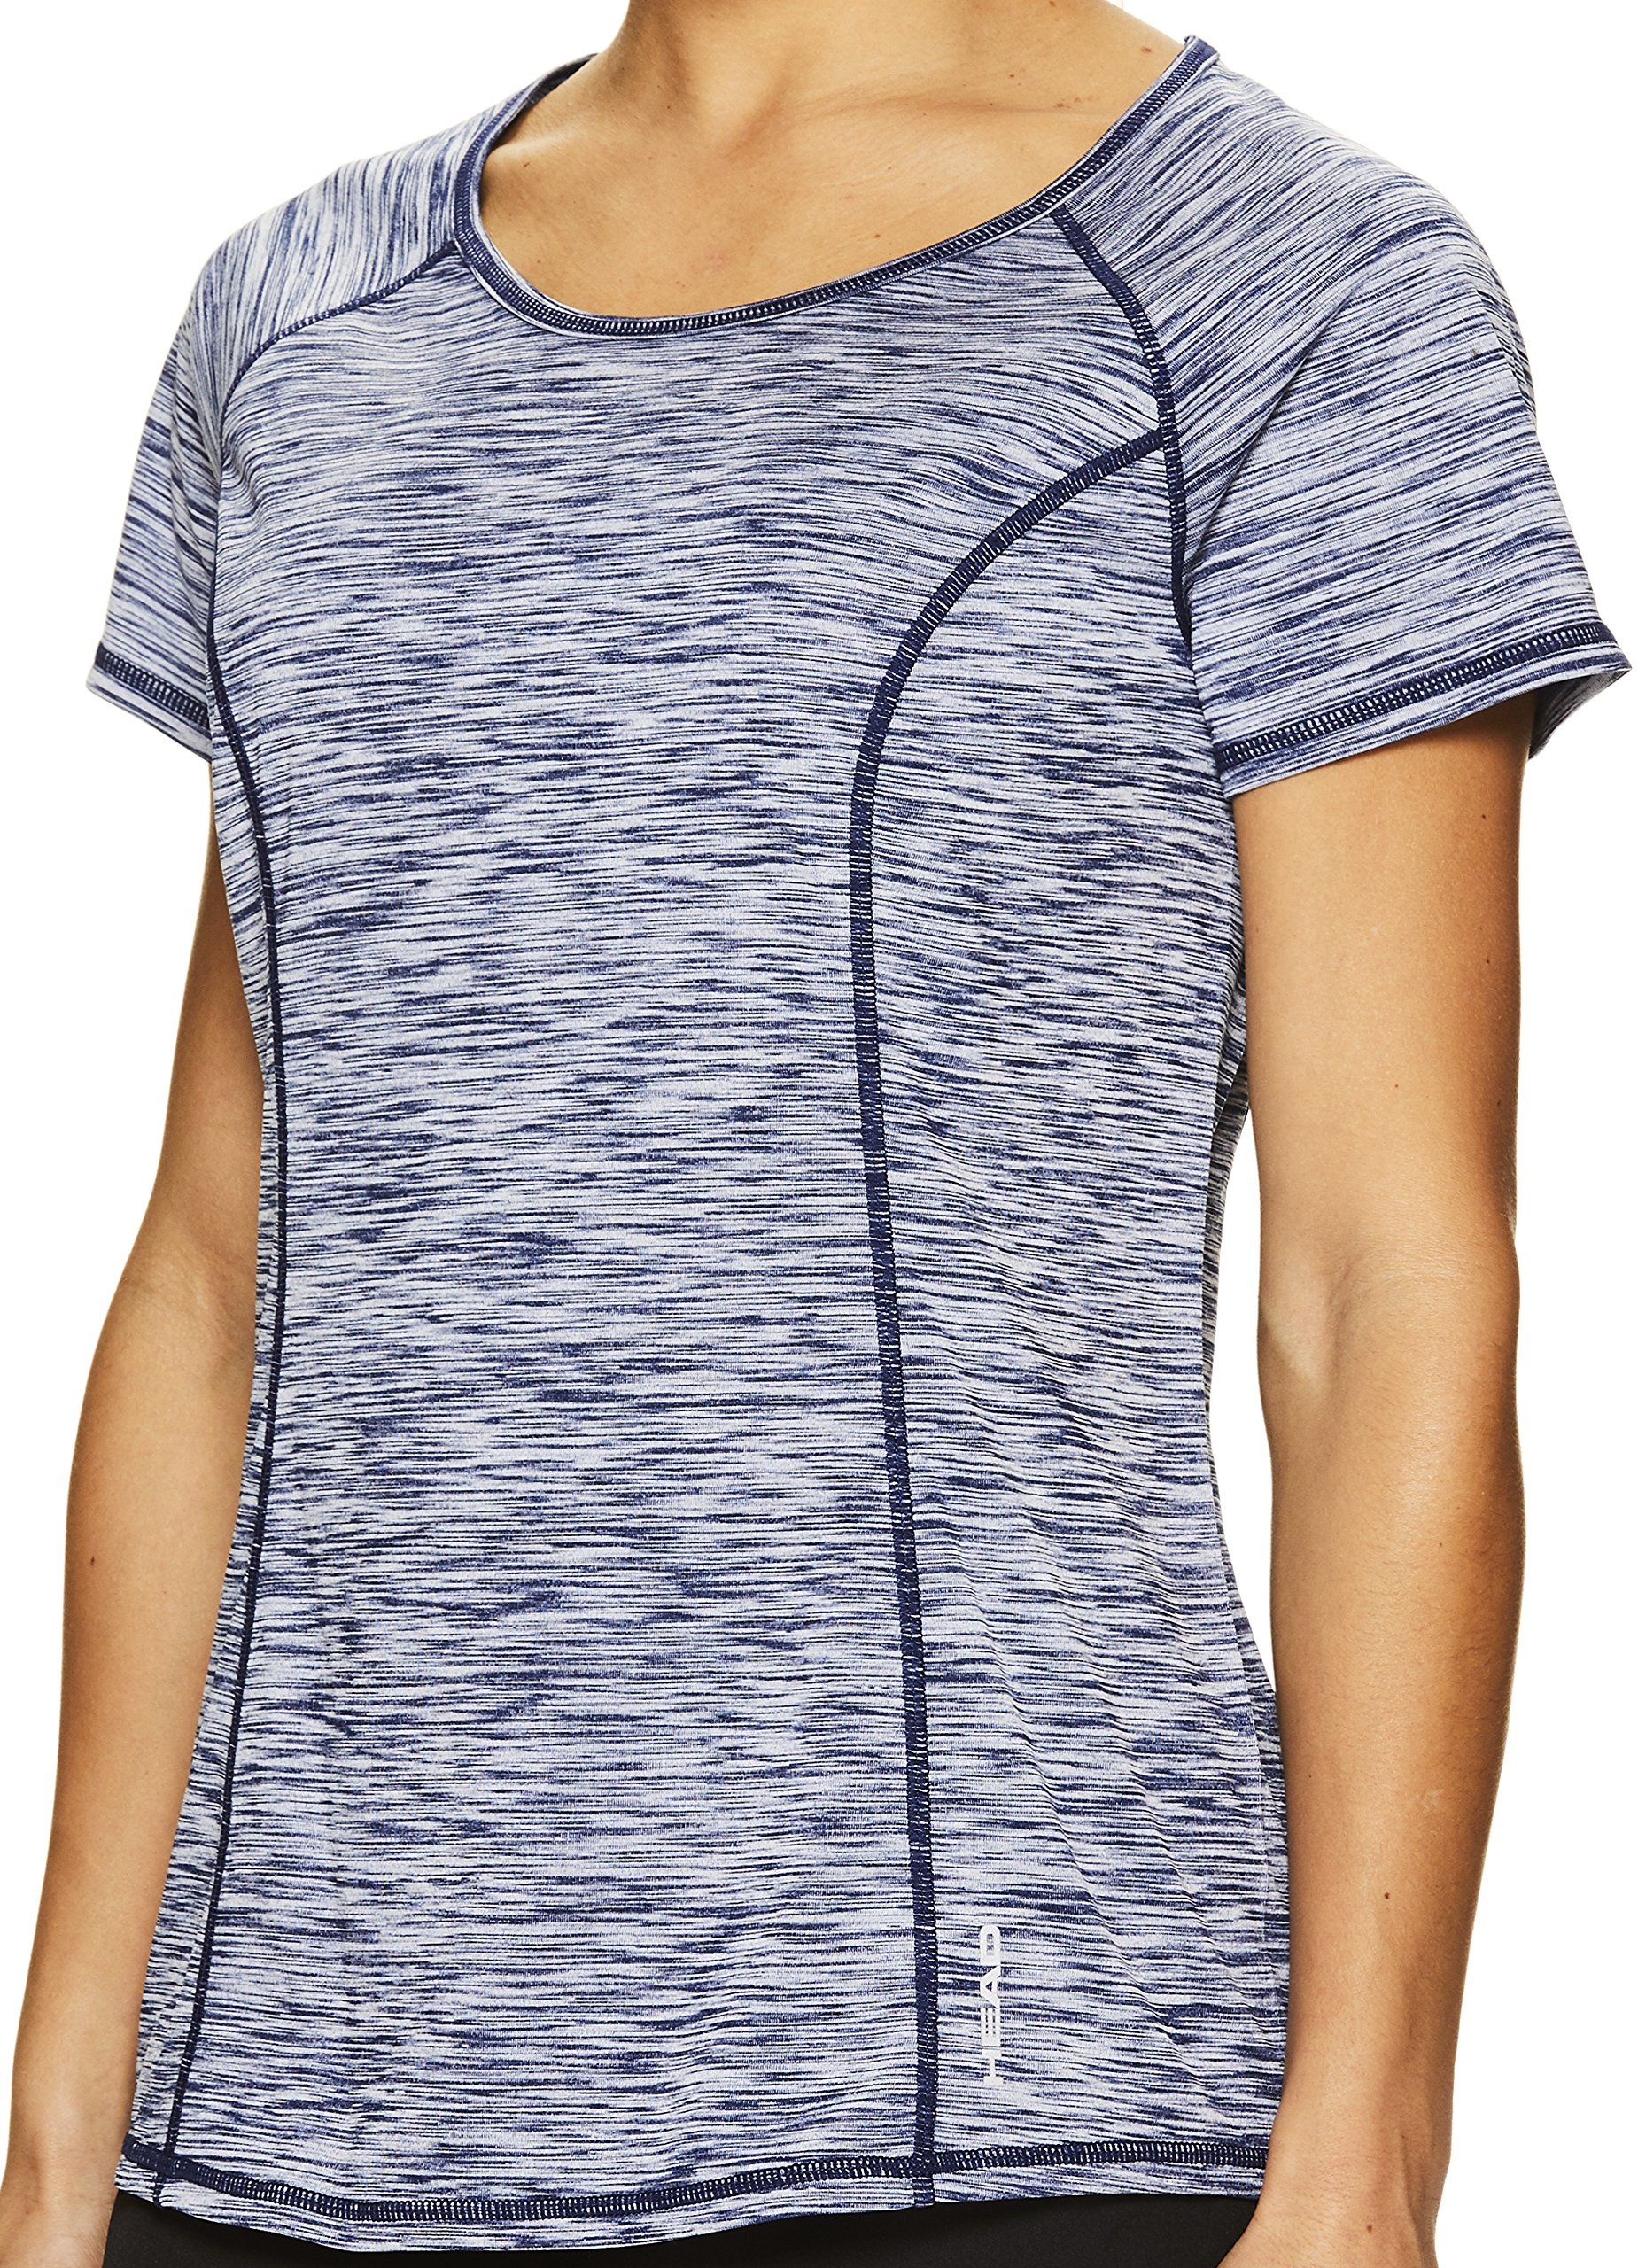 HEAD Women's Serena Short Sleeve Workout T-Shirt - Performance Crew Neck Activewear Top - Medieval Blue Heather, X-Small by HEAD (Image #2)